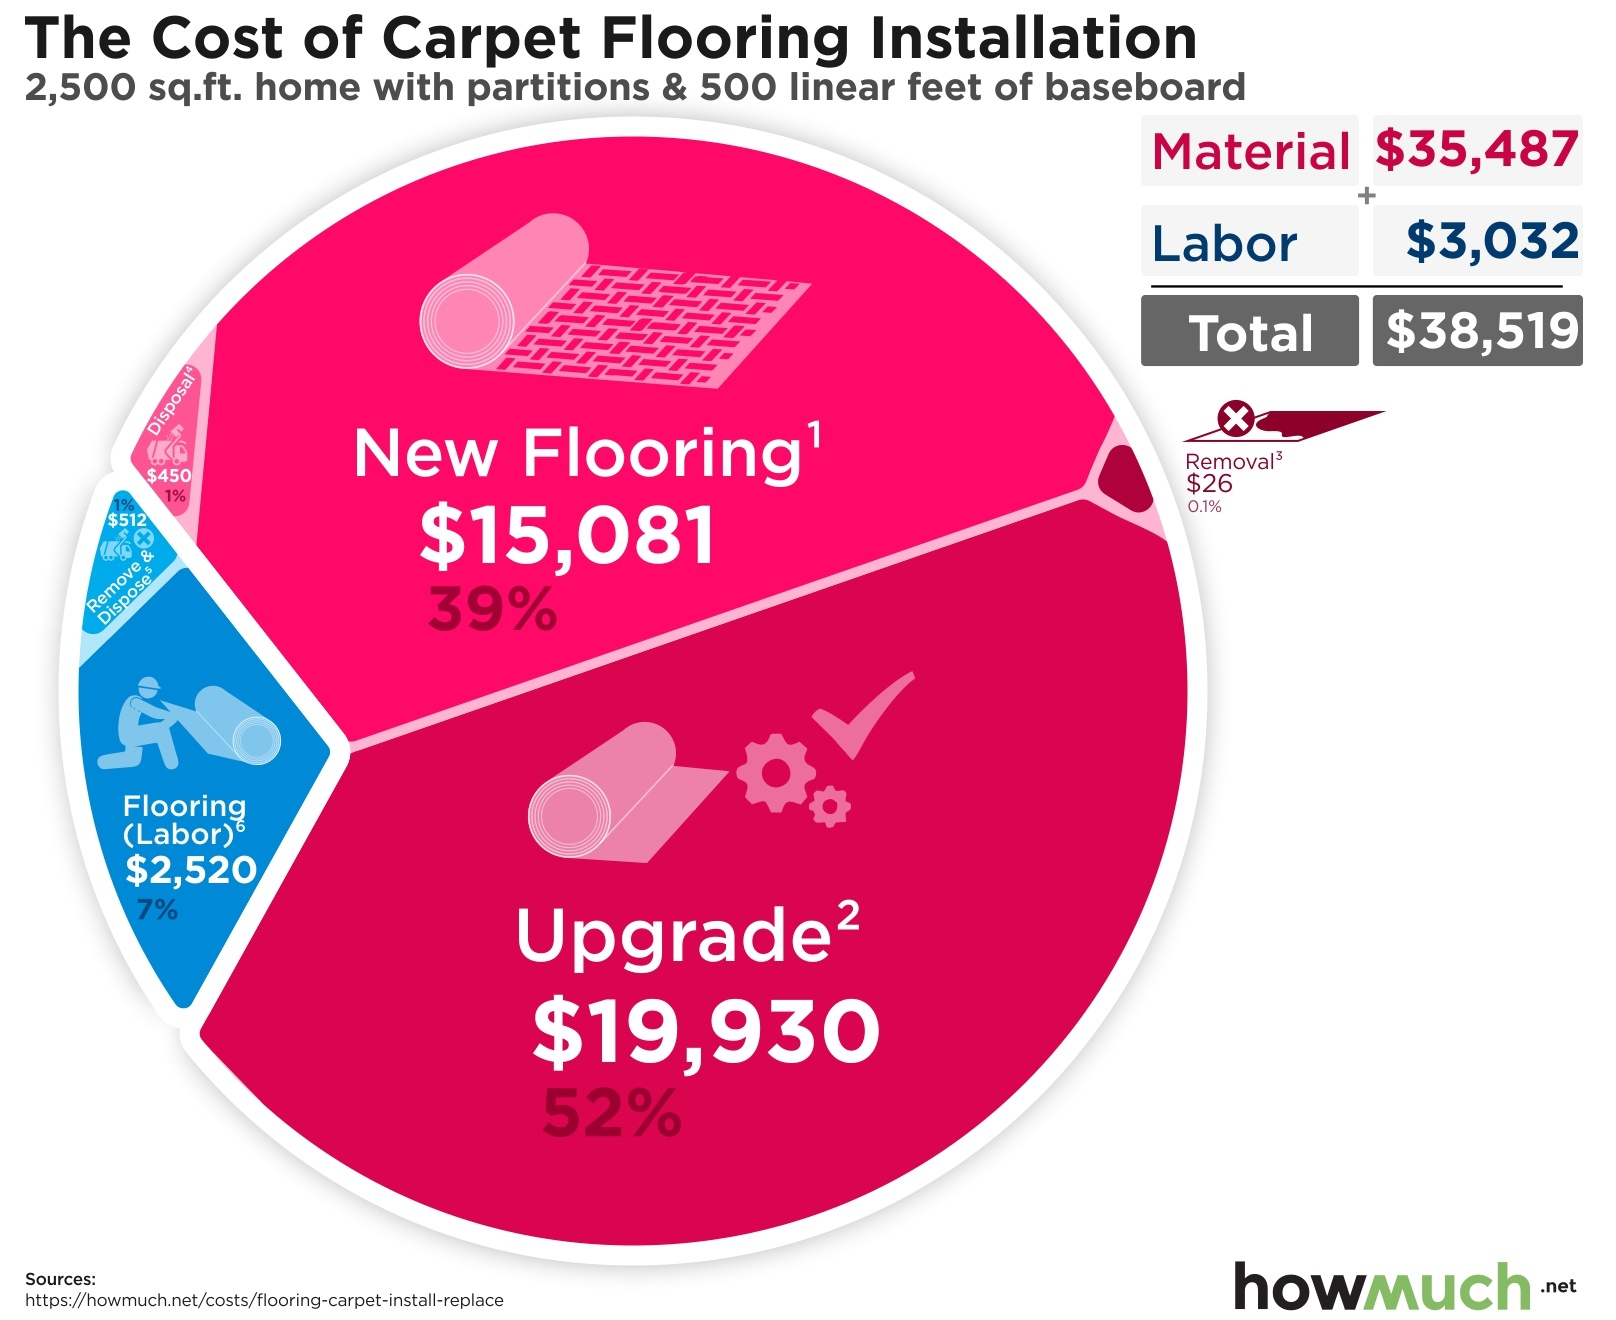 The Cost of Carpet Flooring Installation